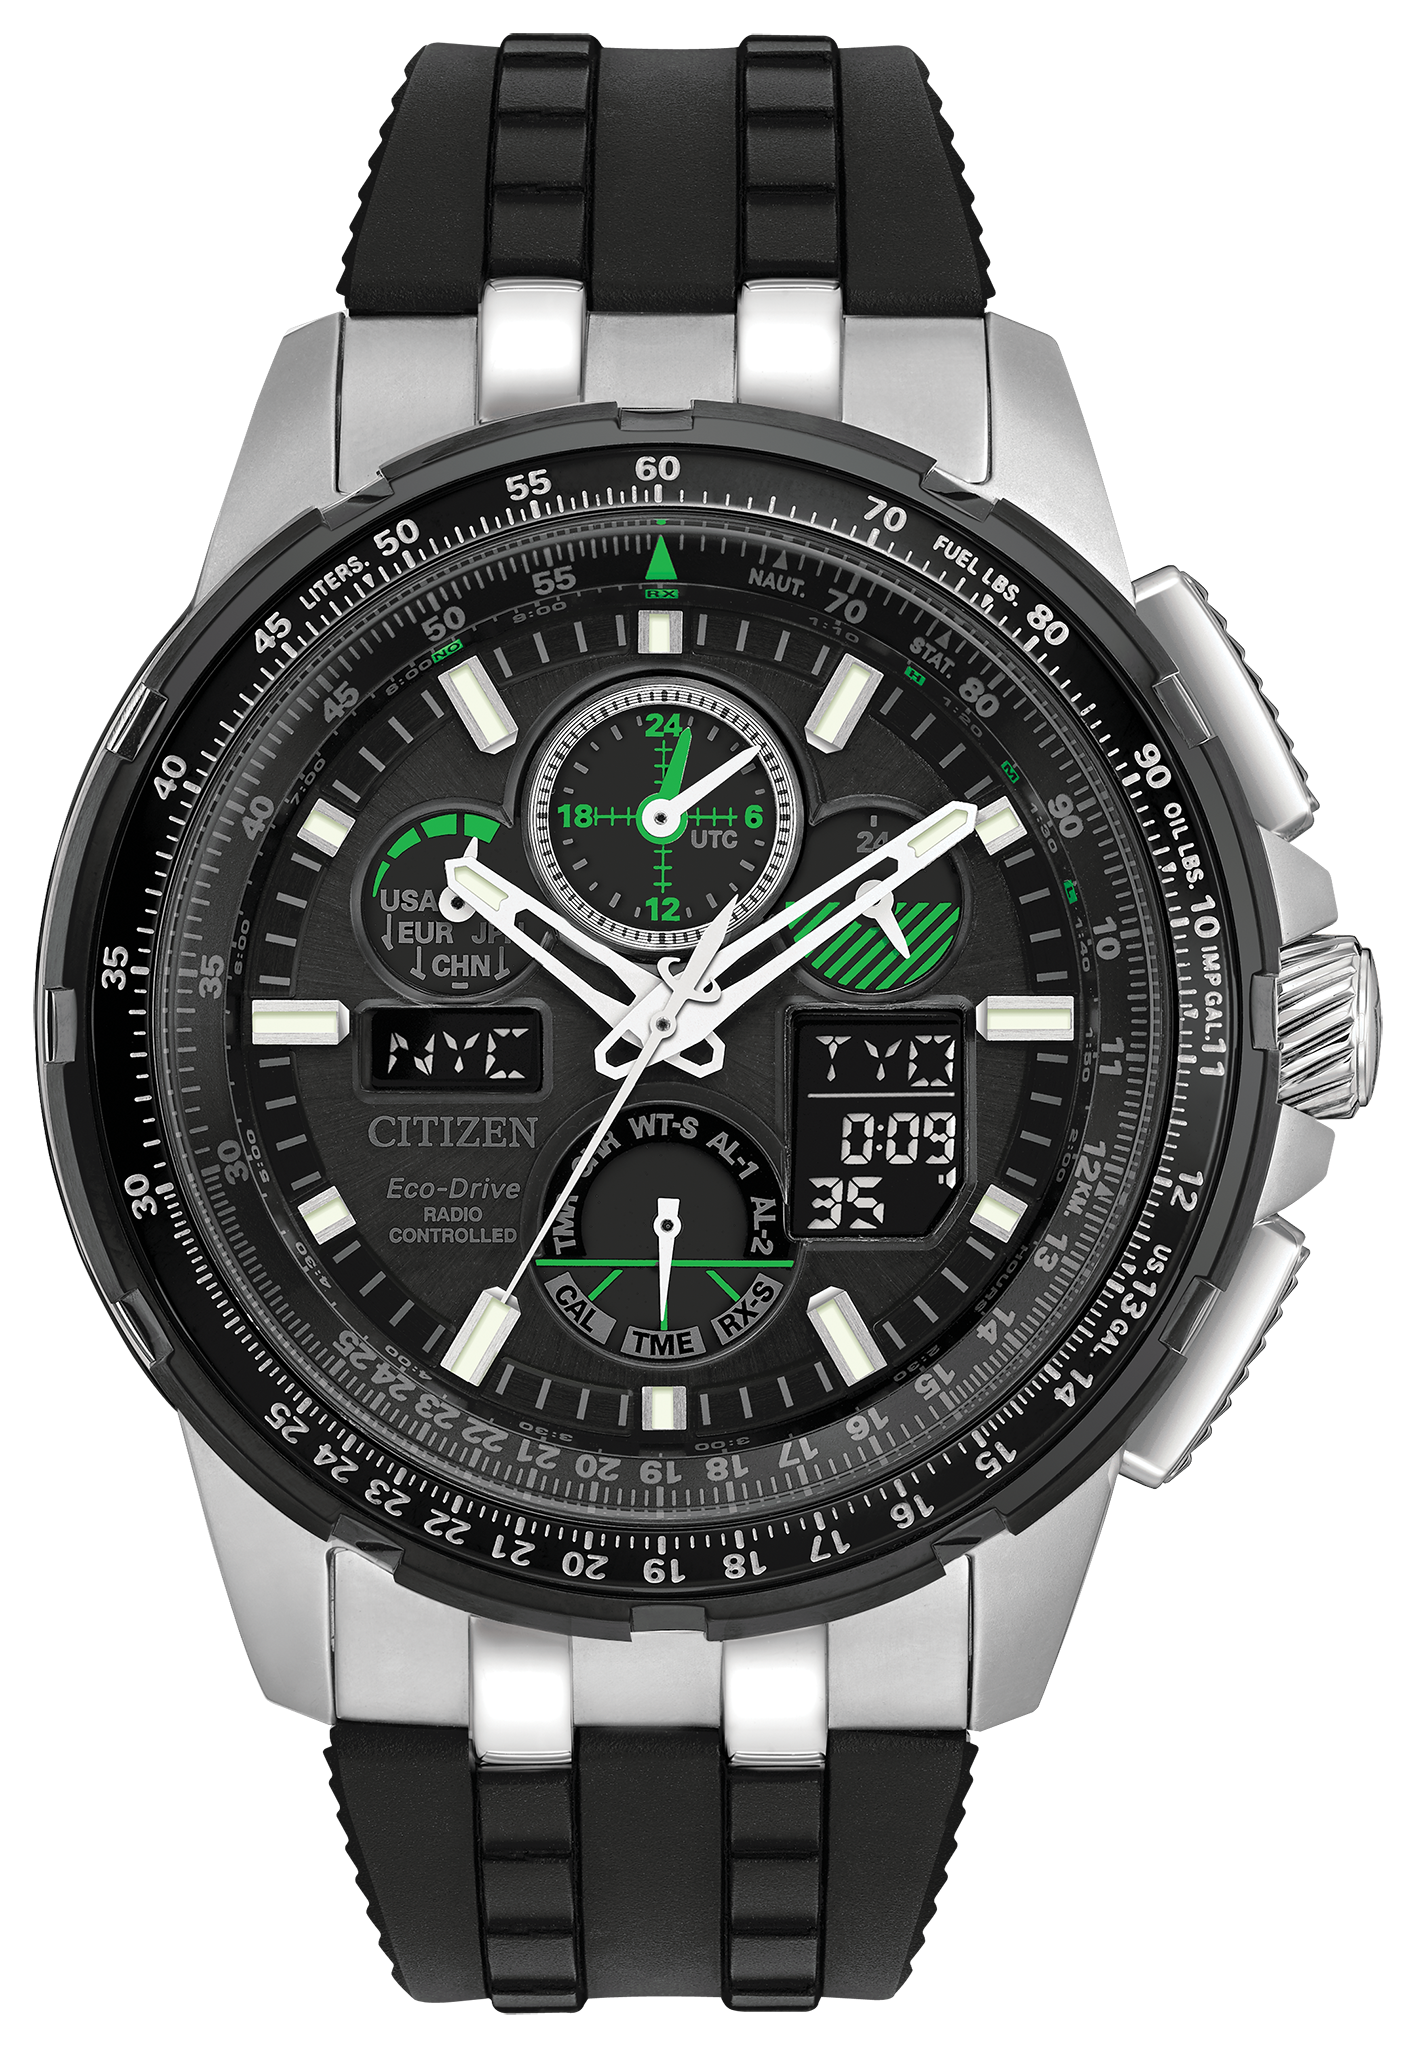 Citizen JY8051-08E Eco-Drive Promaster Skyhawk AT Watch